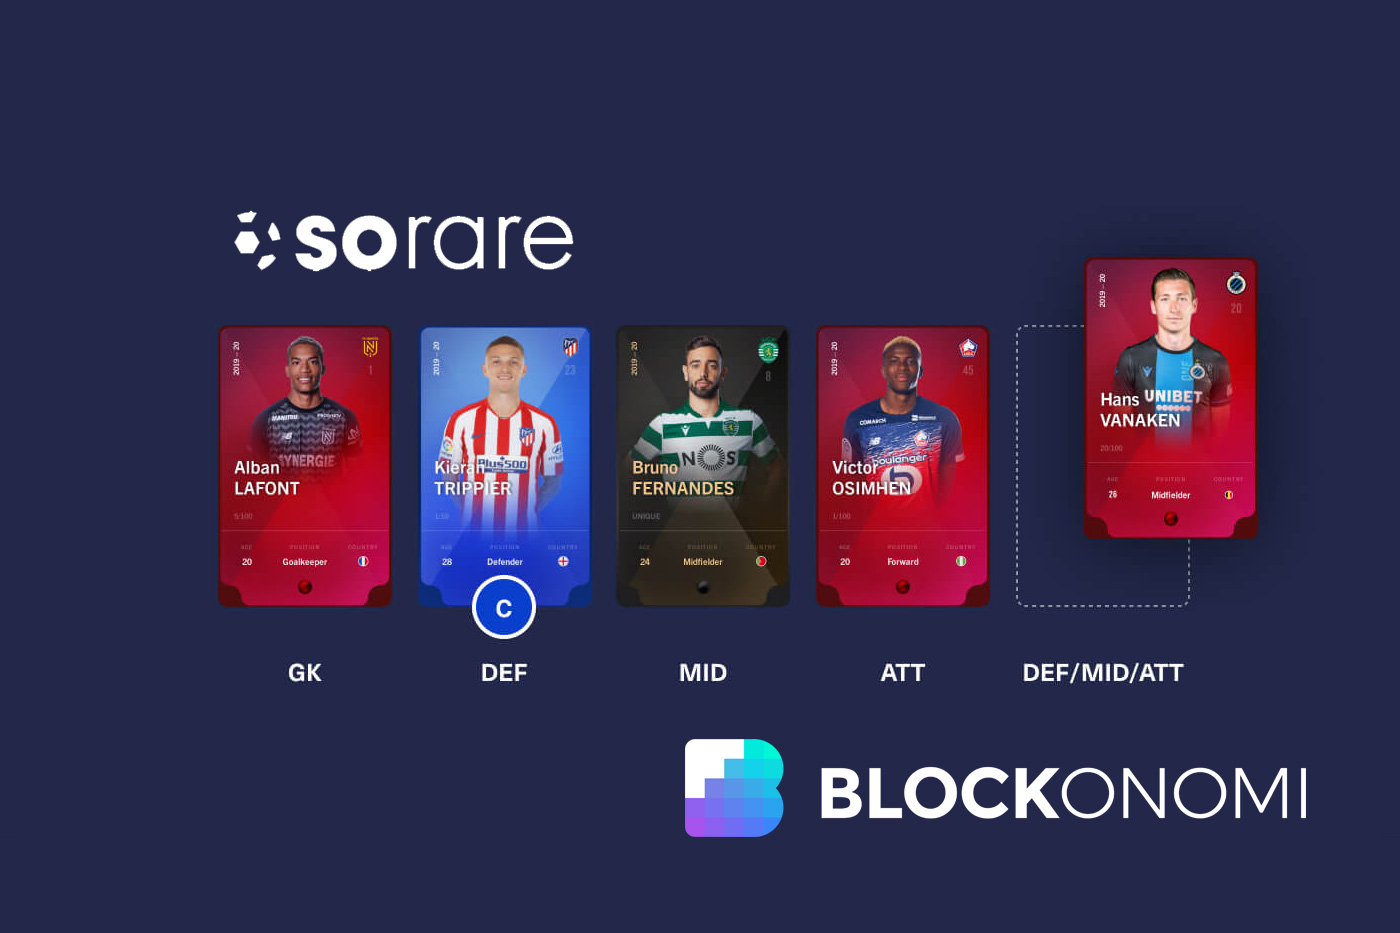 Ethereum Collectibles Game Sorare: Secures Deal With Juventus